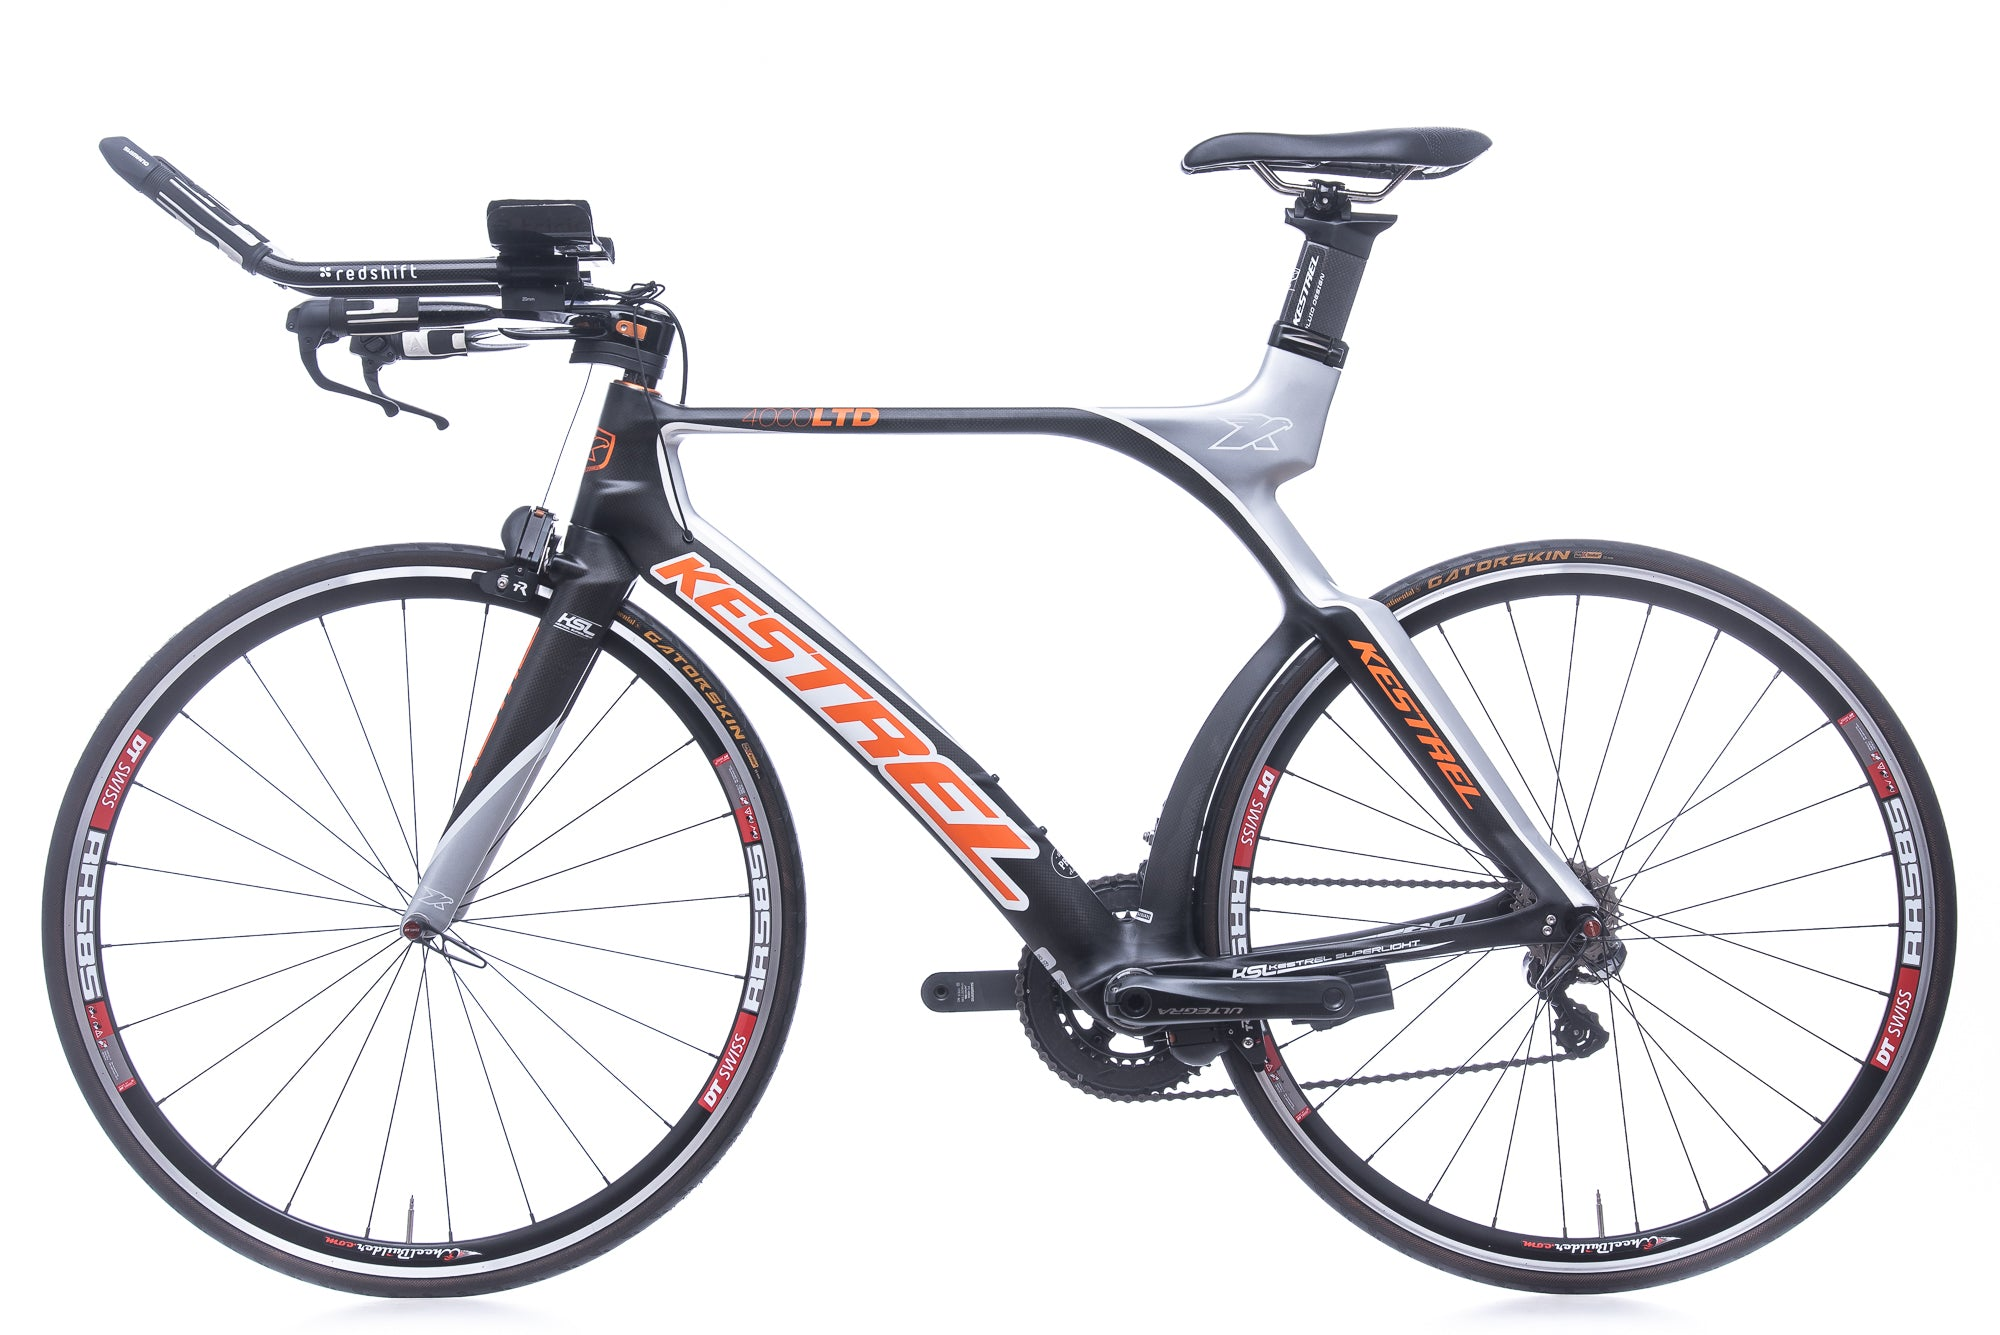 Kestrel 4000 LTD 57.5cm Bike - 2012 non-drive side